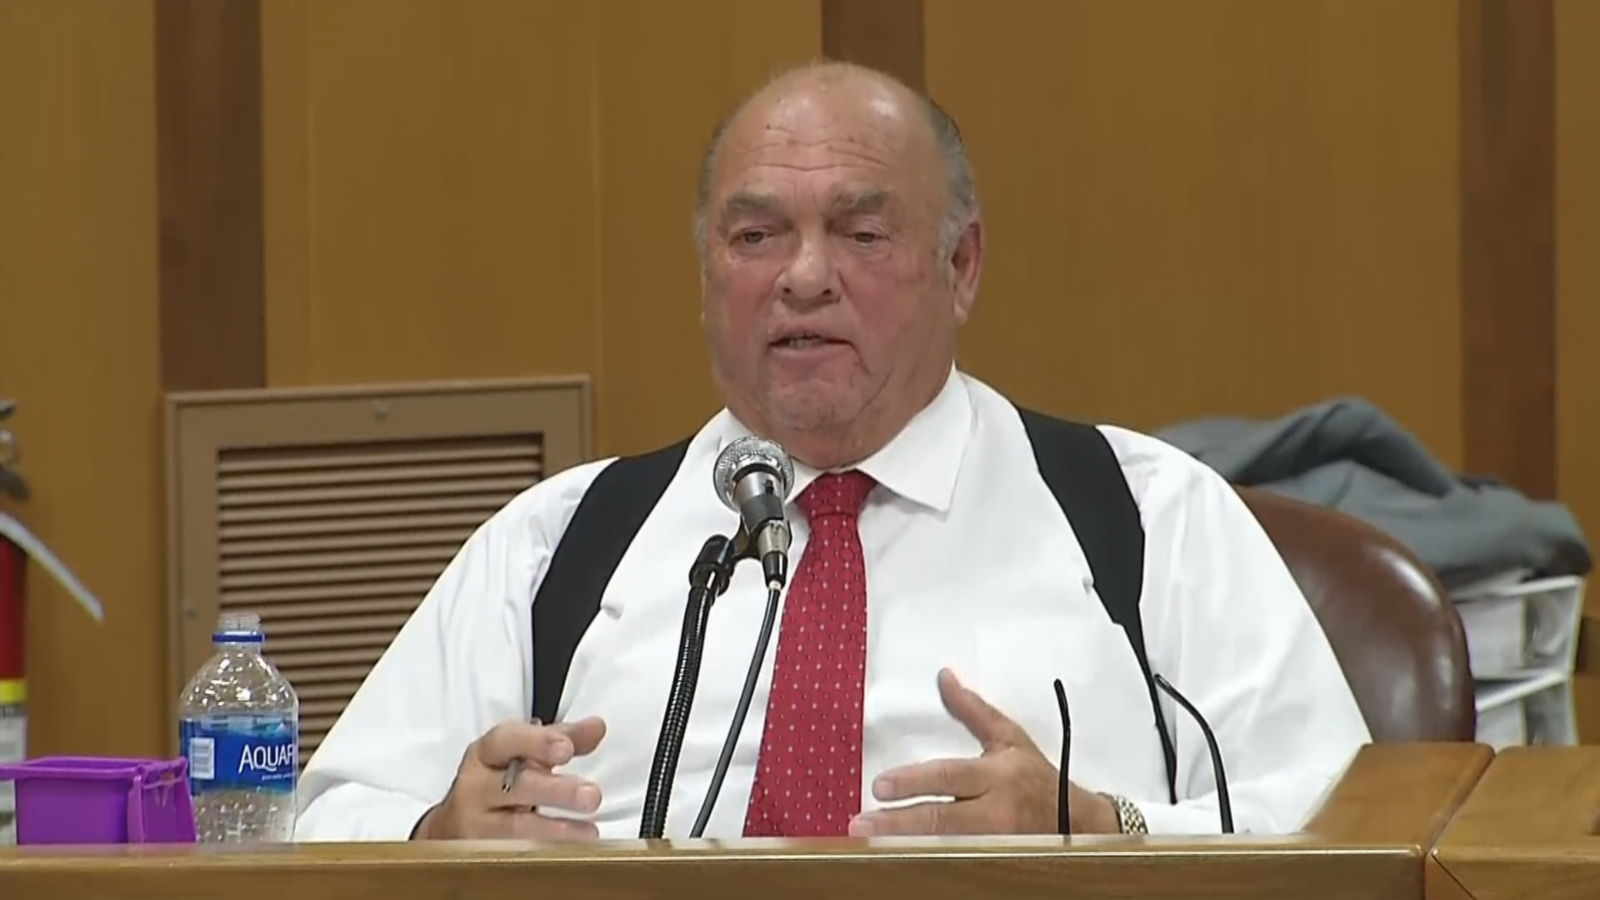 """Talk about corruption,"" said City Counclior Leo Pelletier Tuesday, Sept. 10, 2019 during the meeting. ""This is the worst that I've ever seen you talk about Buddy Cianci, that guy was a priest next to this guy."" (WJAR)"